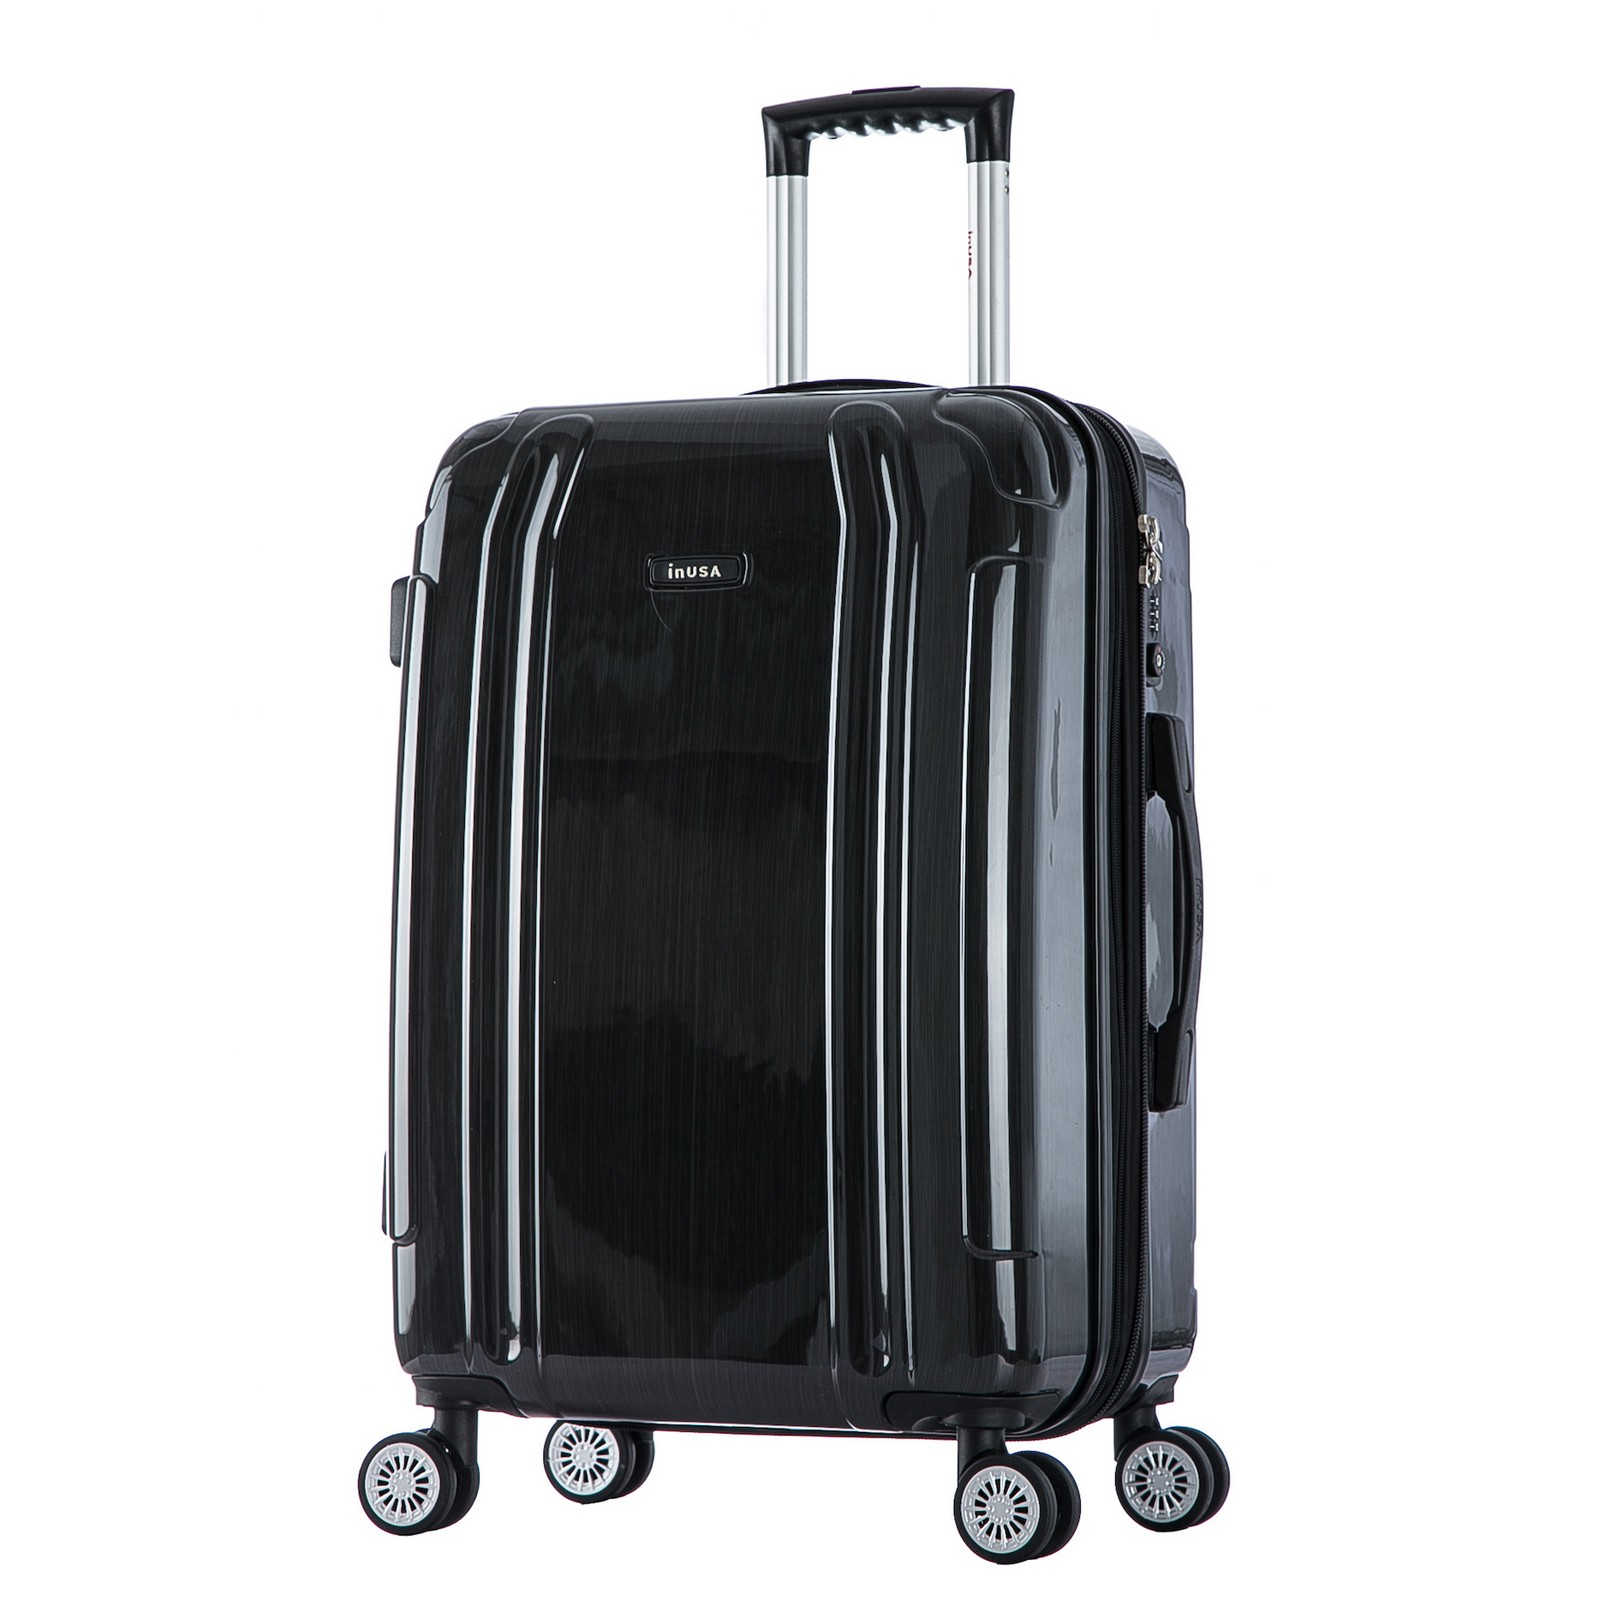 InUSA SouthWorld 27-inch Lightweight Hardside Spinner Luggage ...